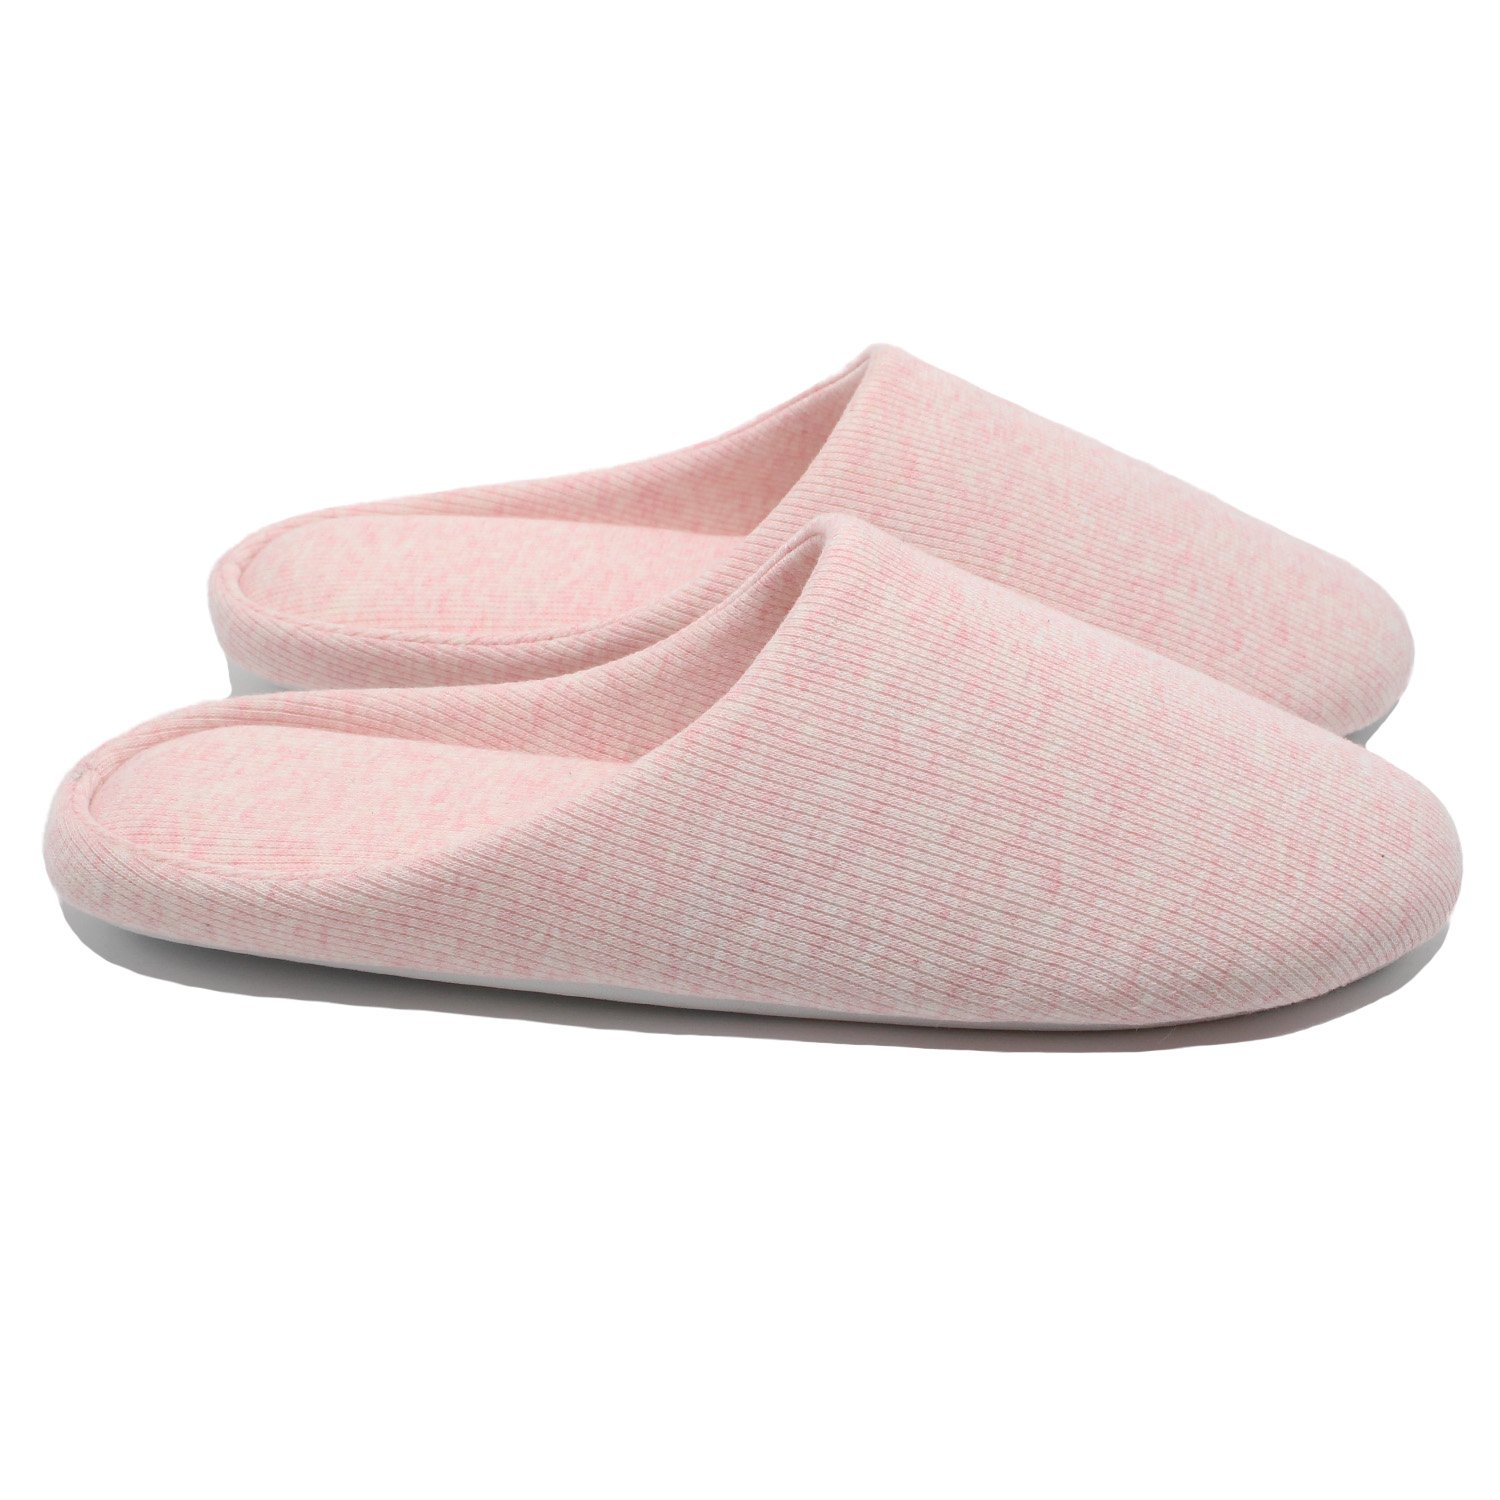 Ofoot Women's Cotton Memory Foam Washable Anti-Slip Indoor Slippers by Ofoot